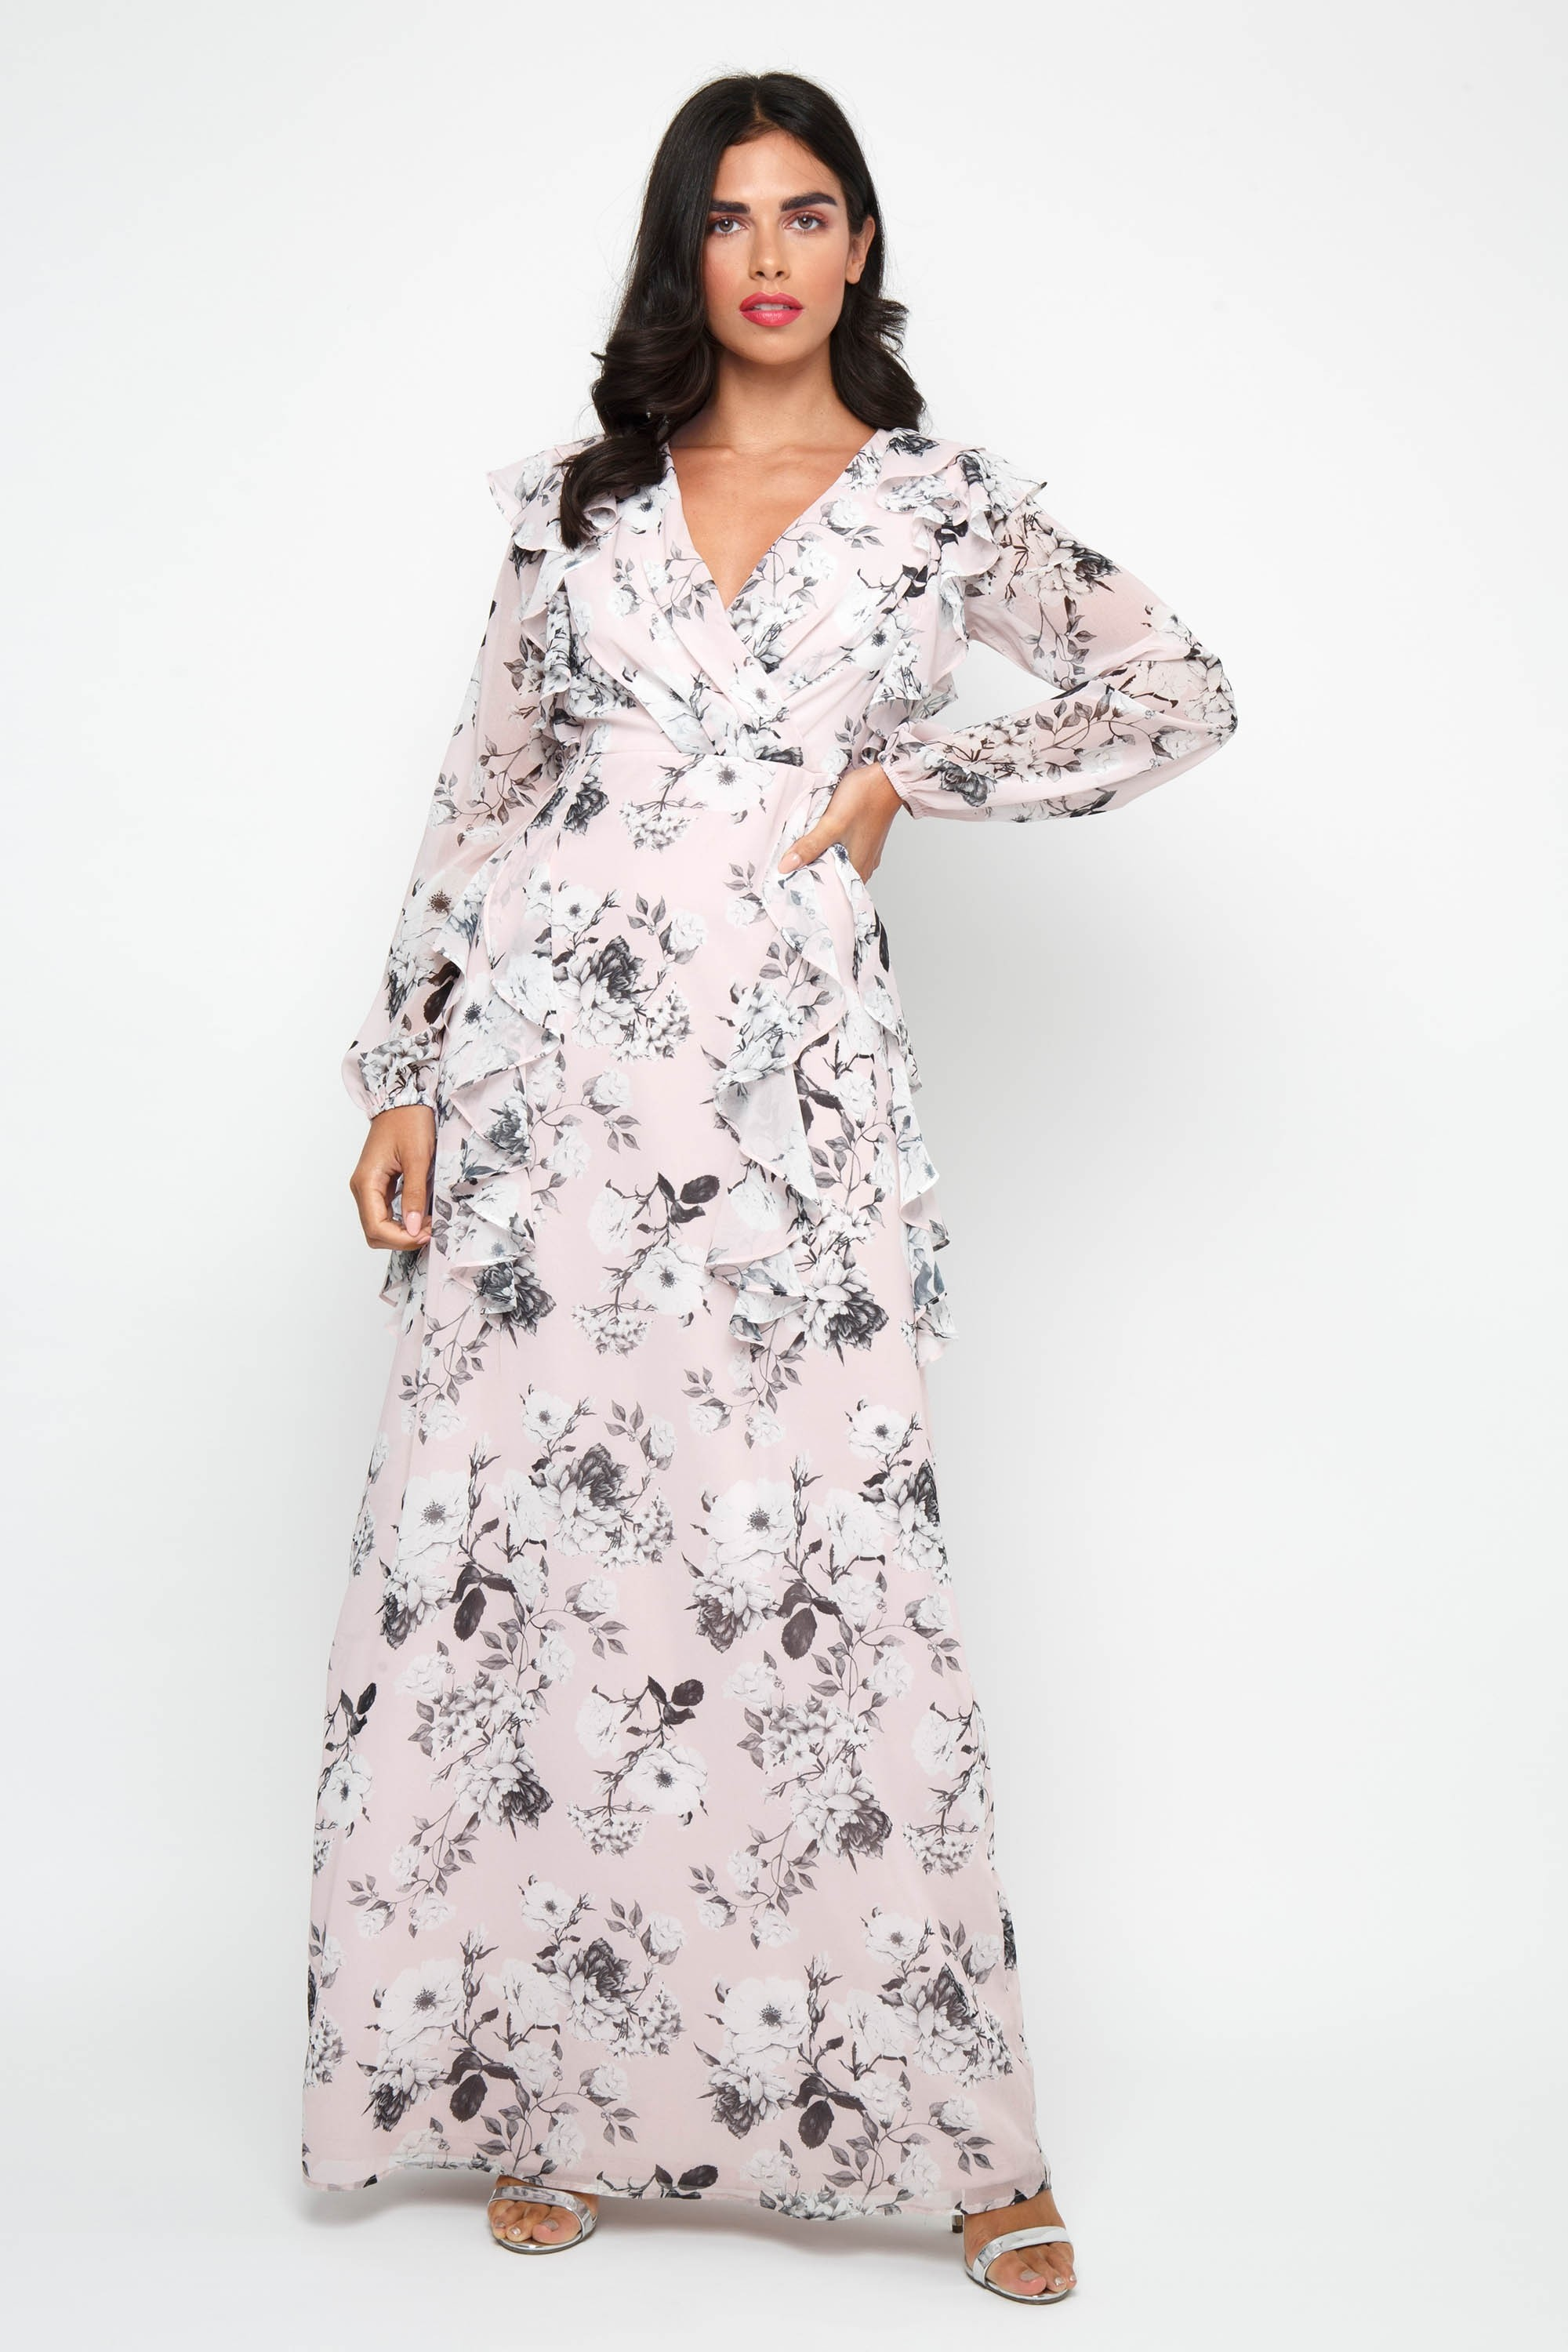 49a9c39e0f TFNC SHANICE PINK FLORAL MAXI DRESS | TFNC PARTY DRESSES